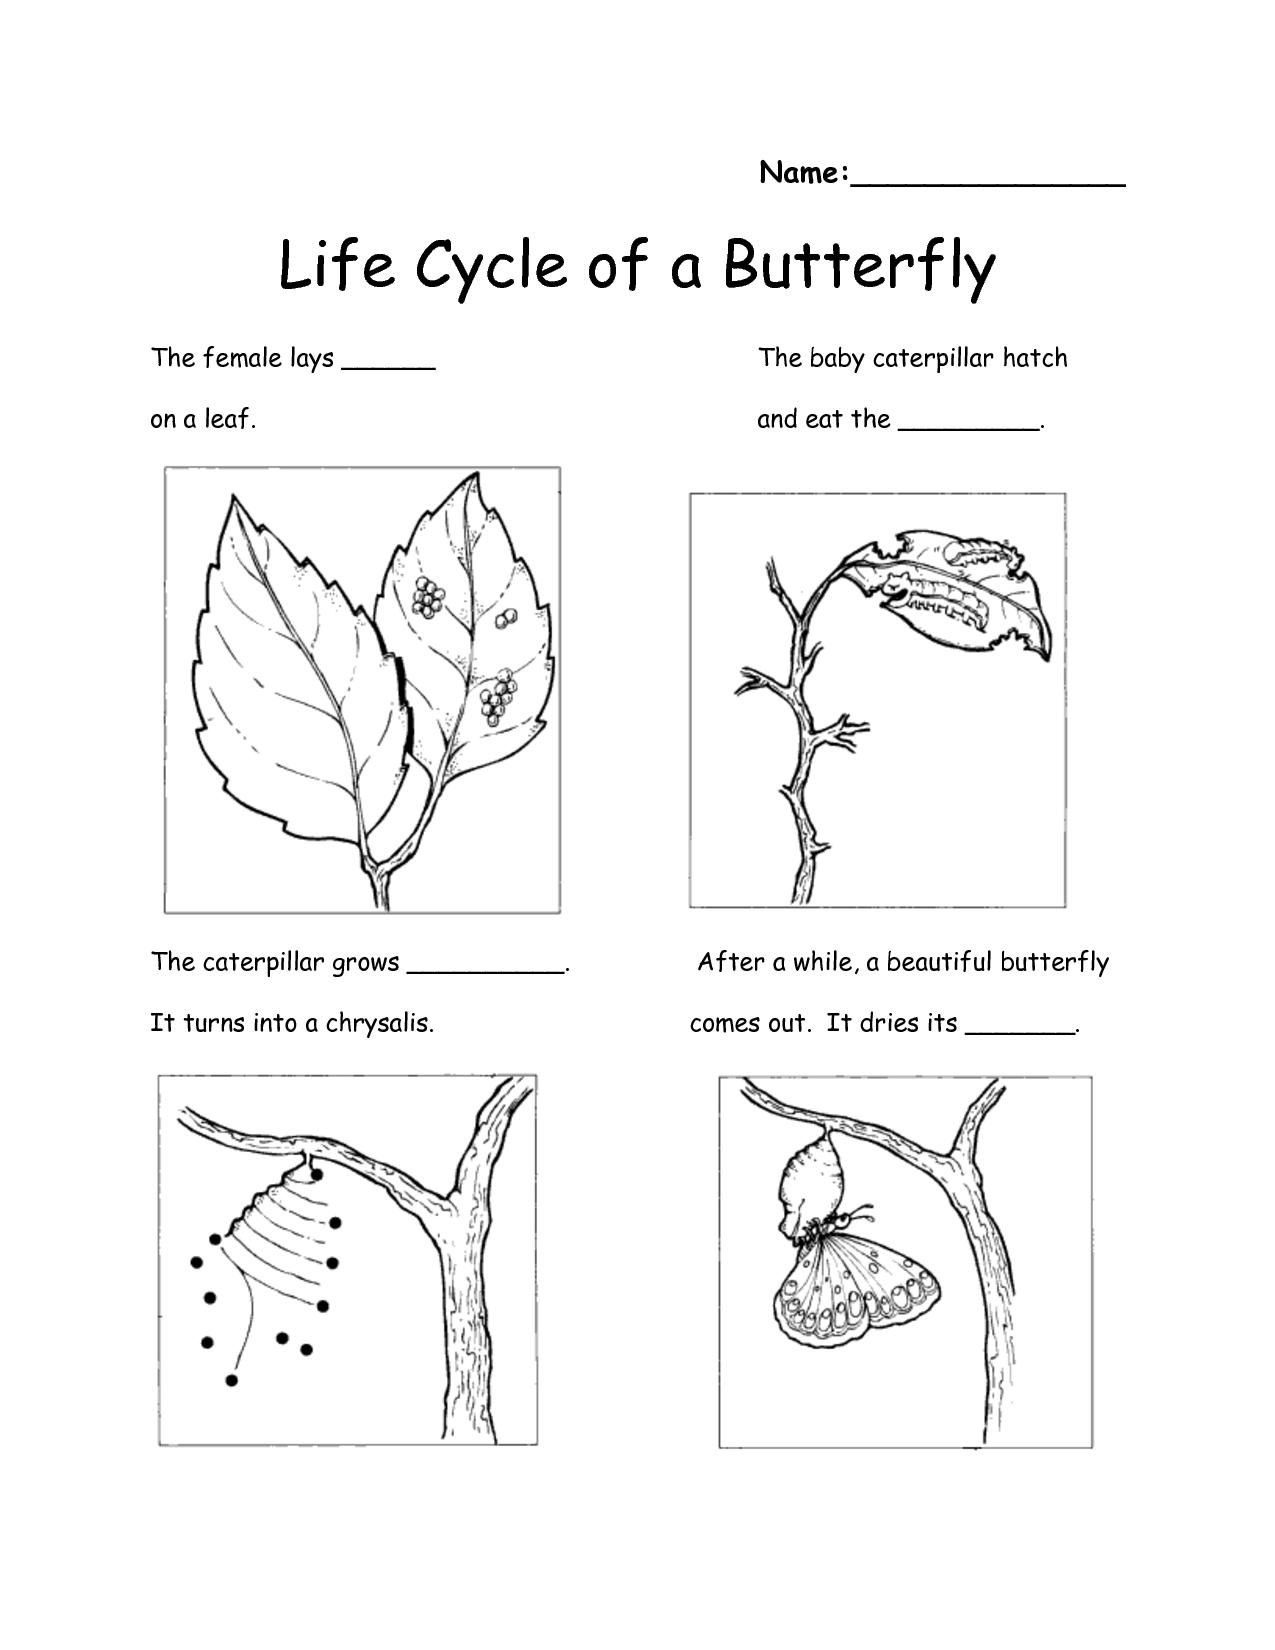 worksheet Life Cycle Of Butterfly Worksheet 78 best images about science class on pinterest life cycles interactive websites and experiments